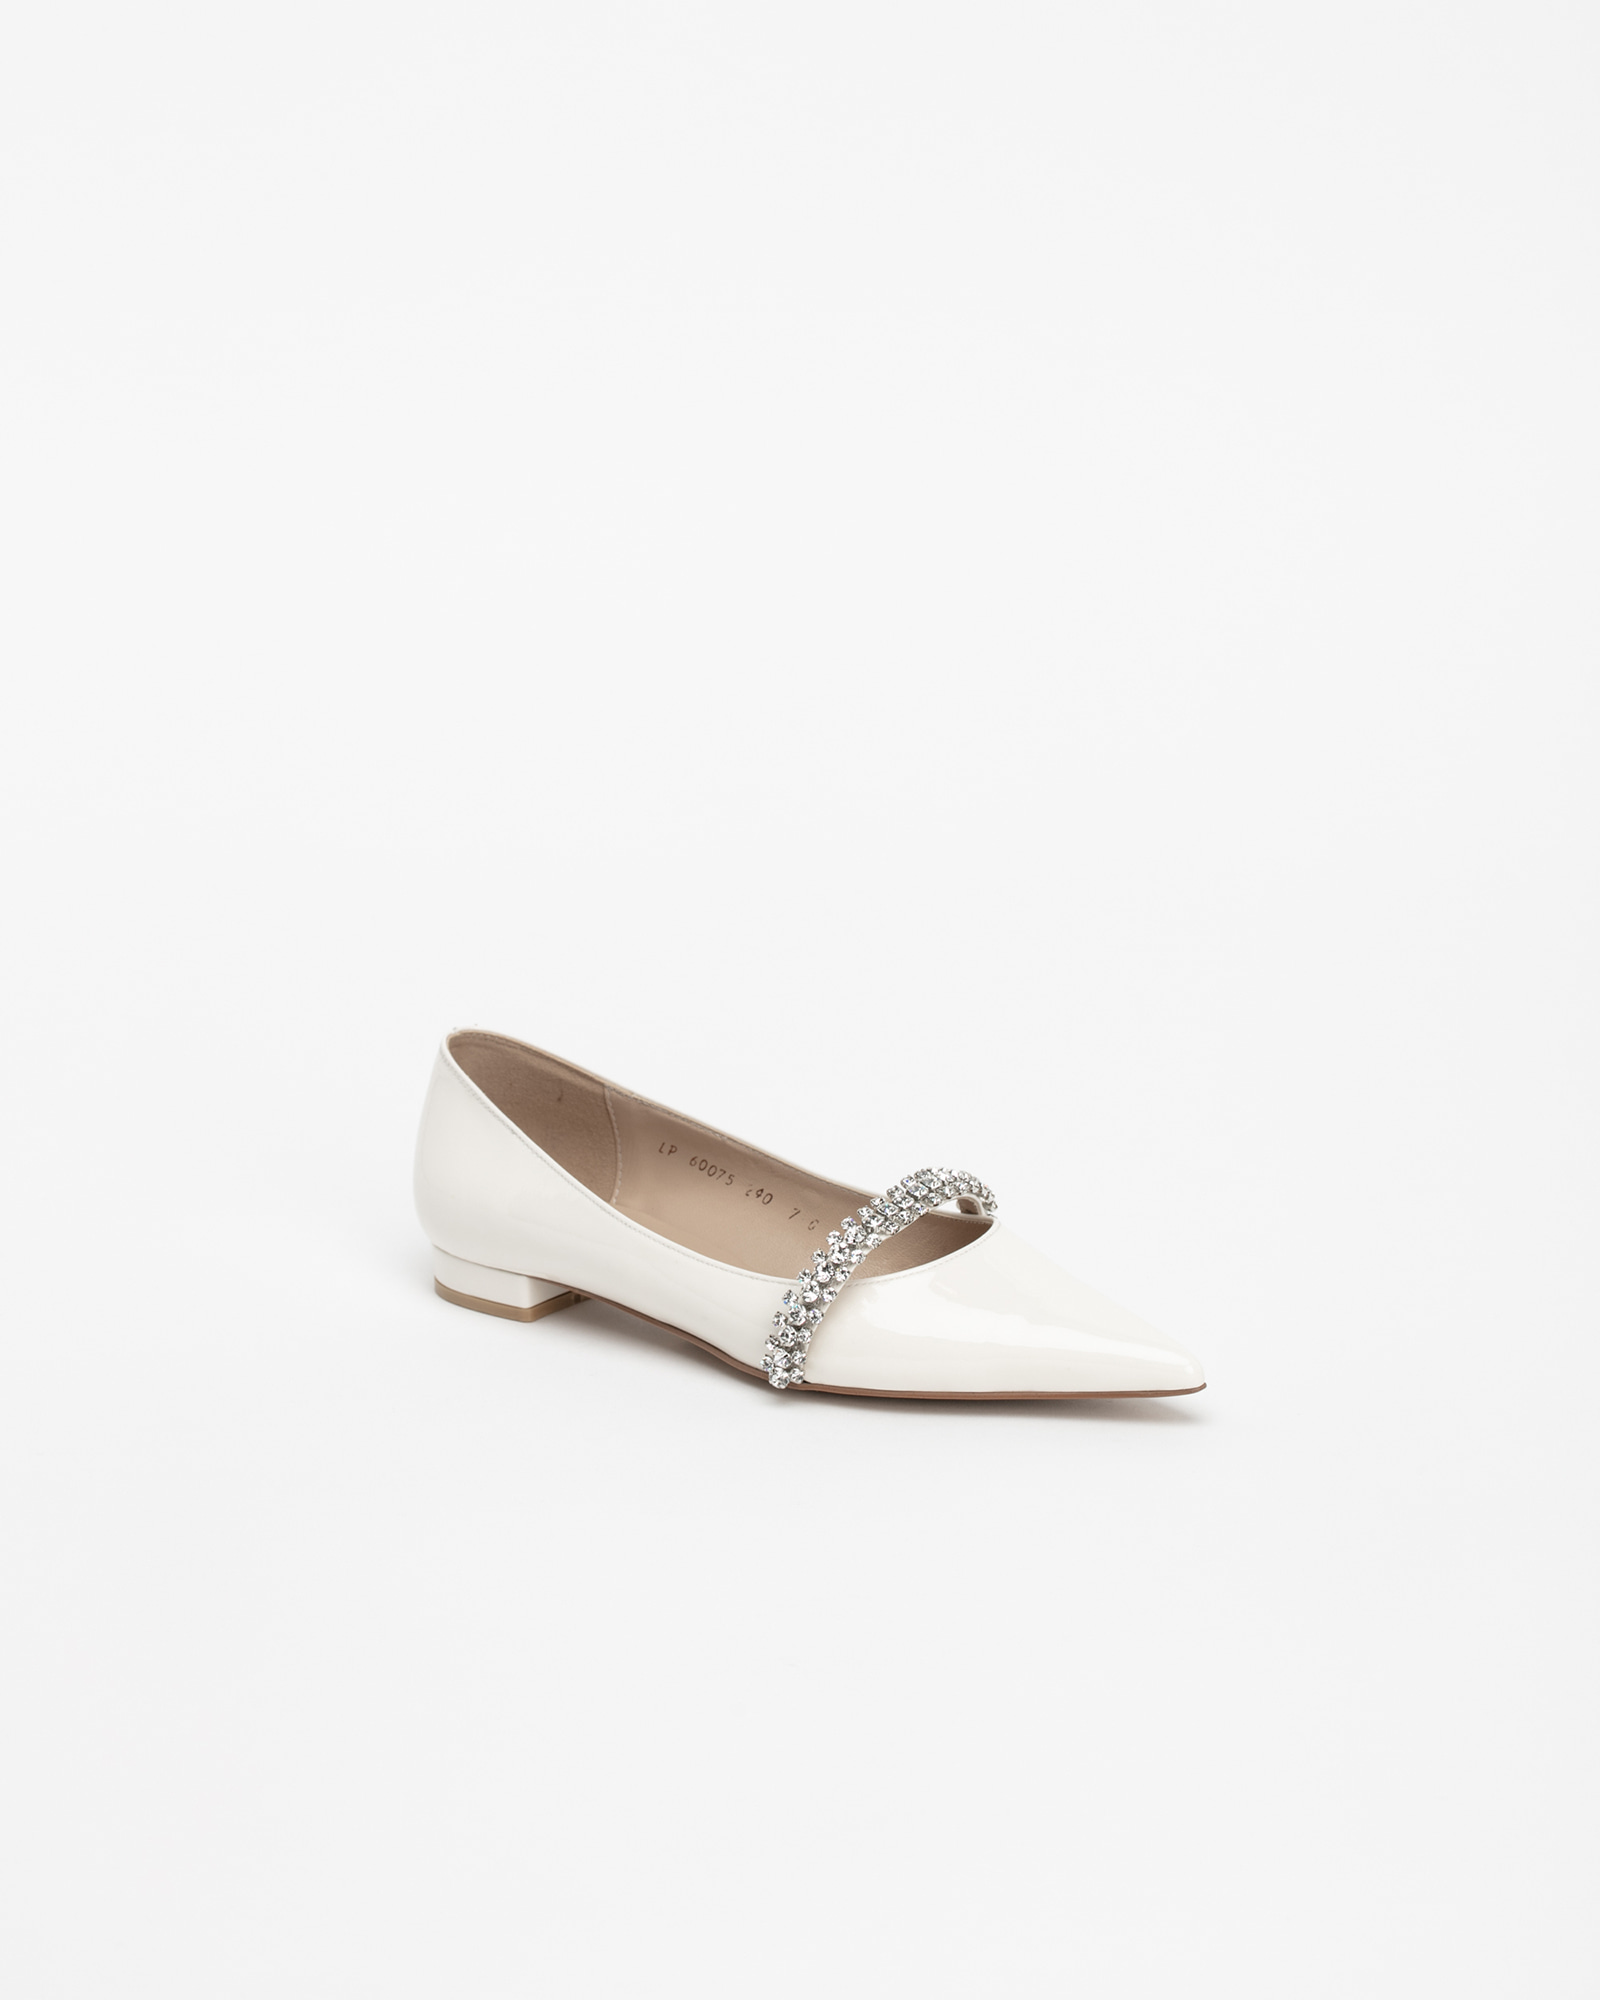 Patio Stiletto Flat Shoes in Milky White Patent